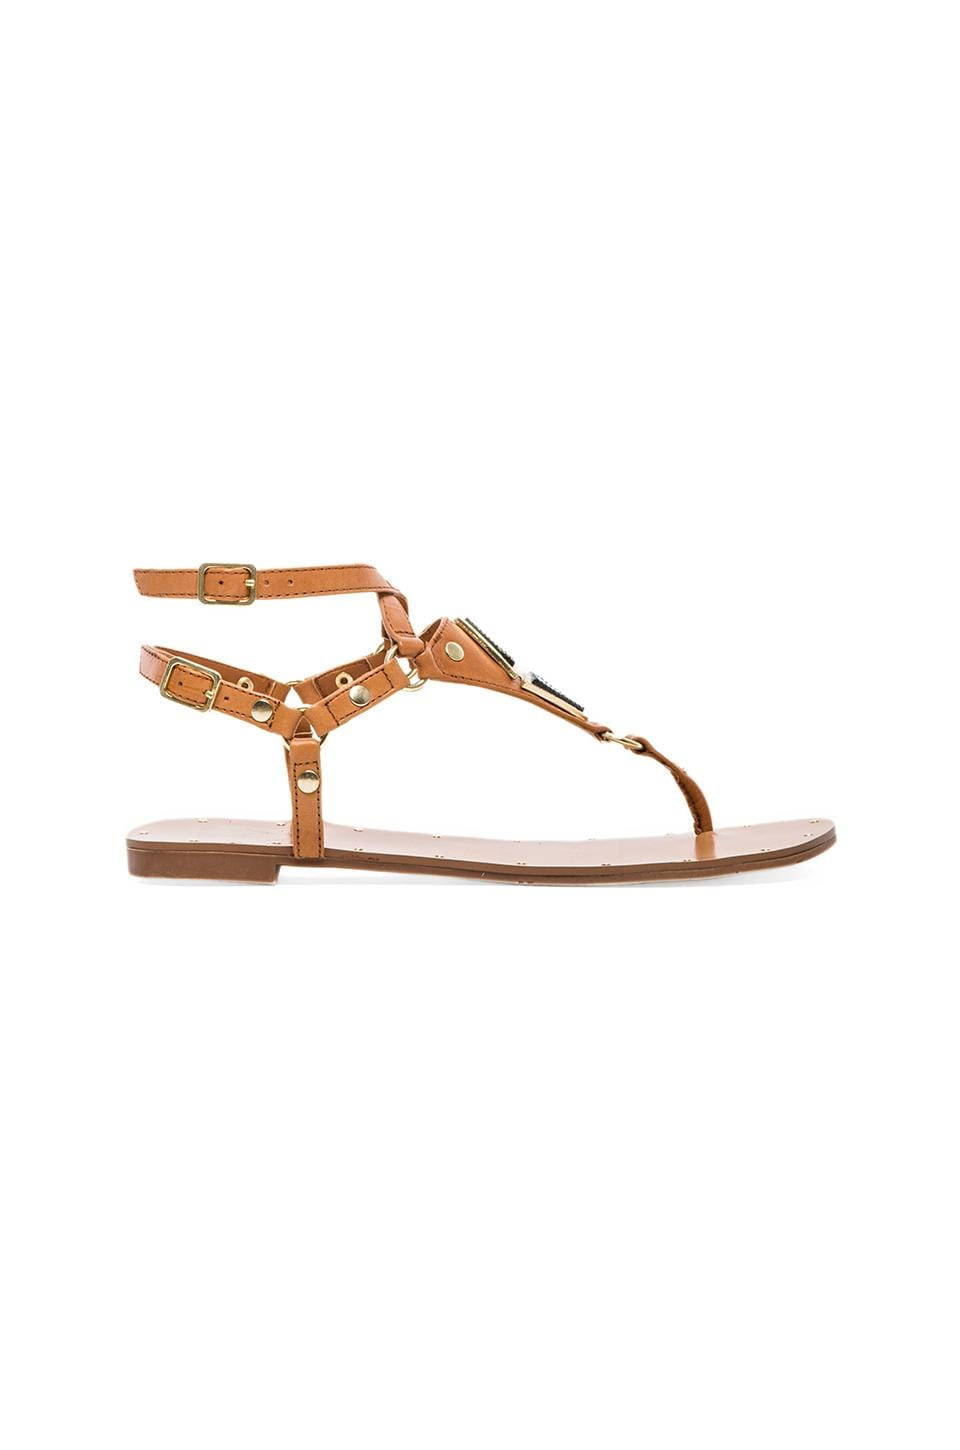 Dolce Vita Darva Sandal in Honey